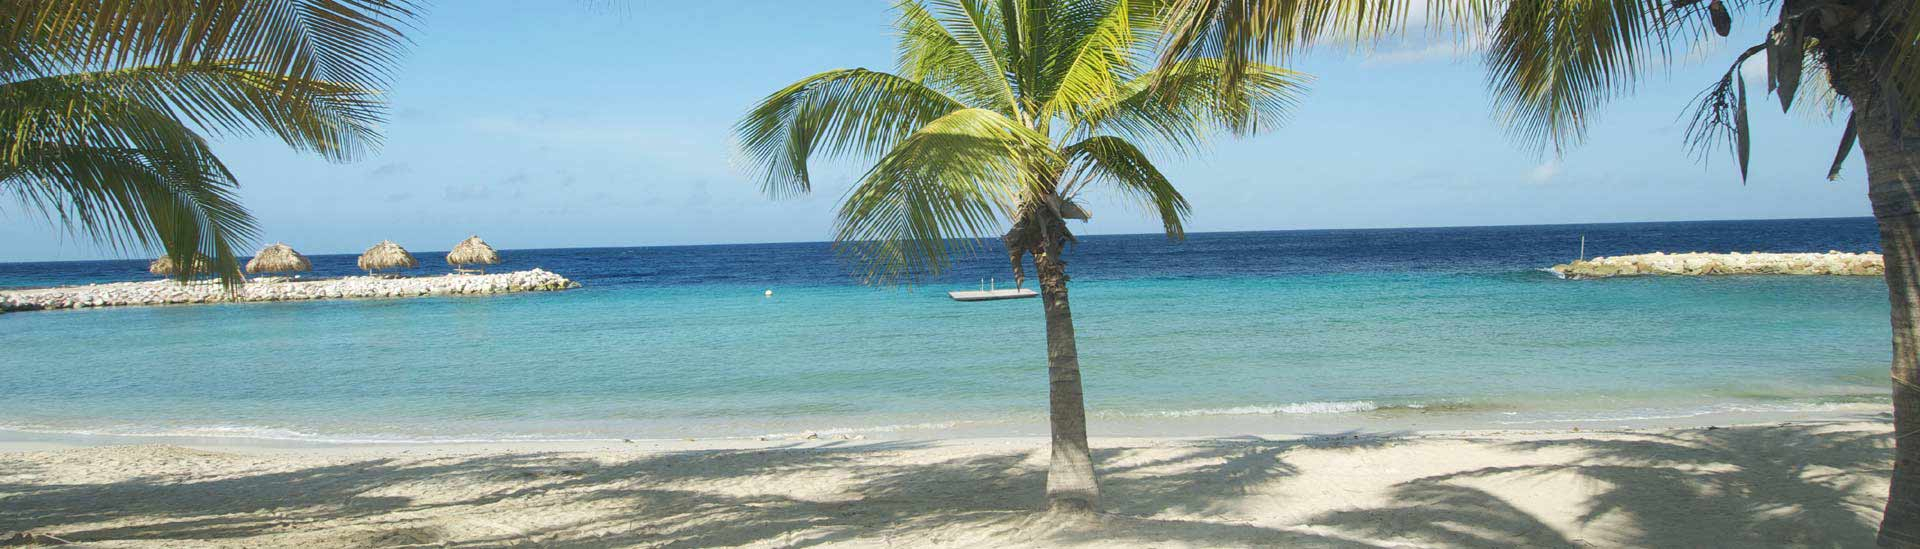 Stay in one of Sunny Curacao's lodges and explore the island and enjoy all activities on Curacao.